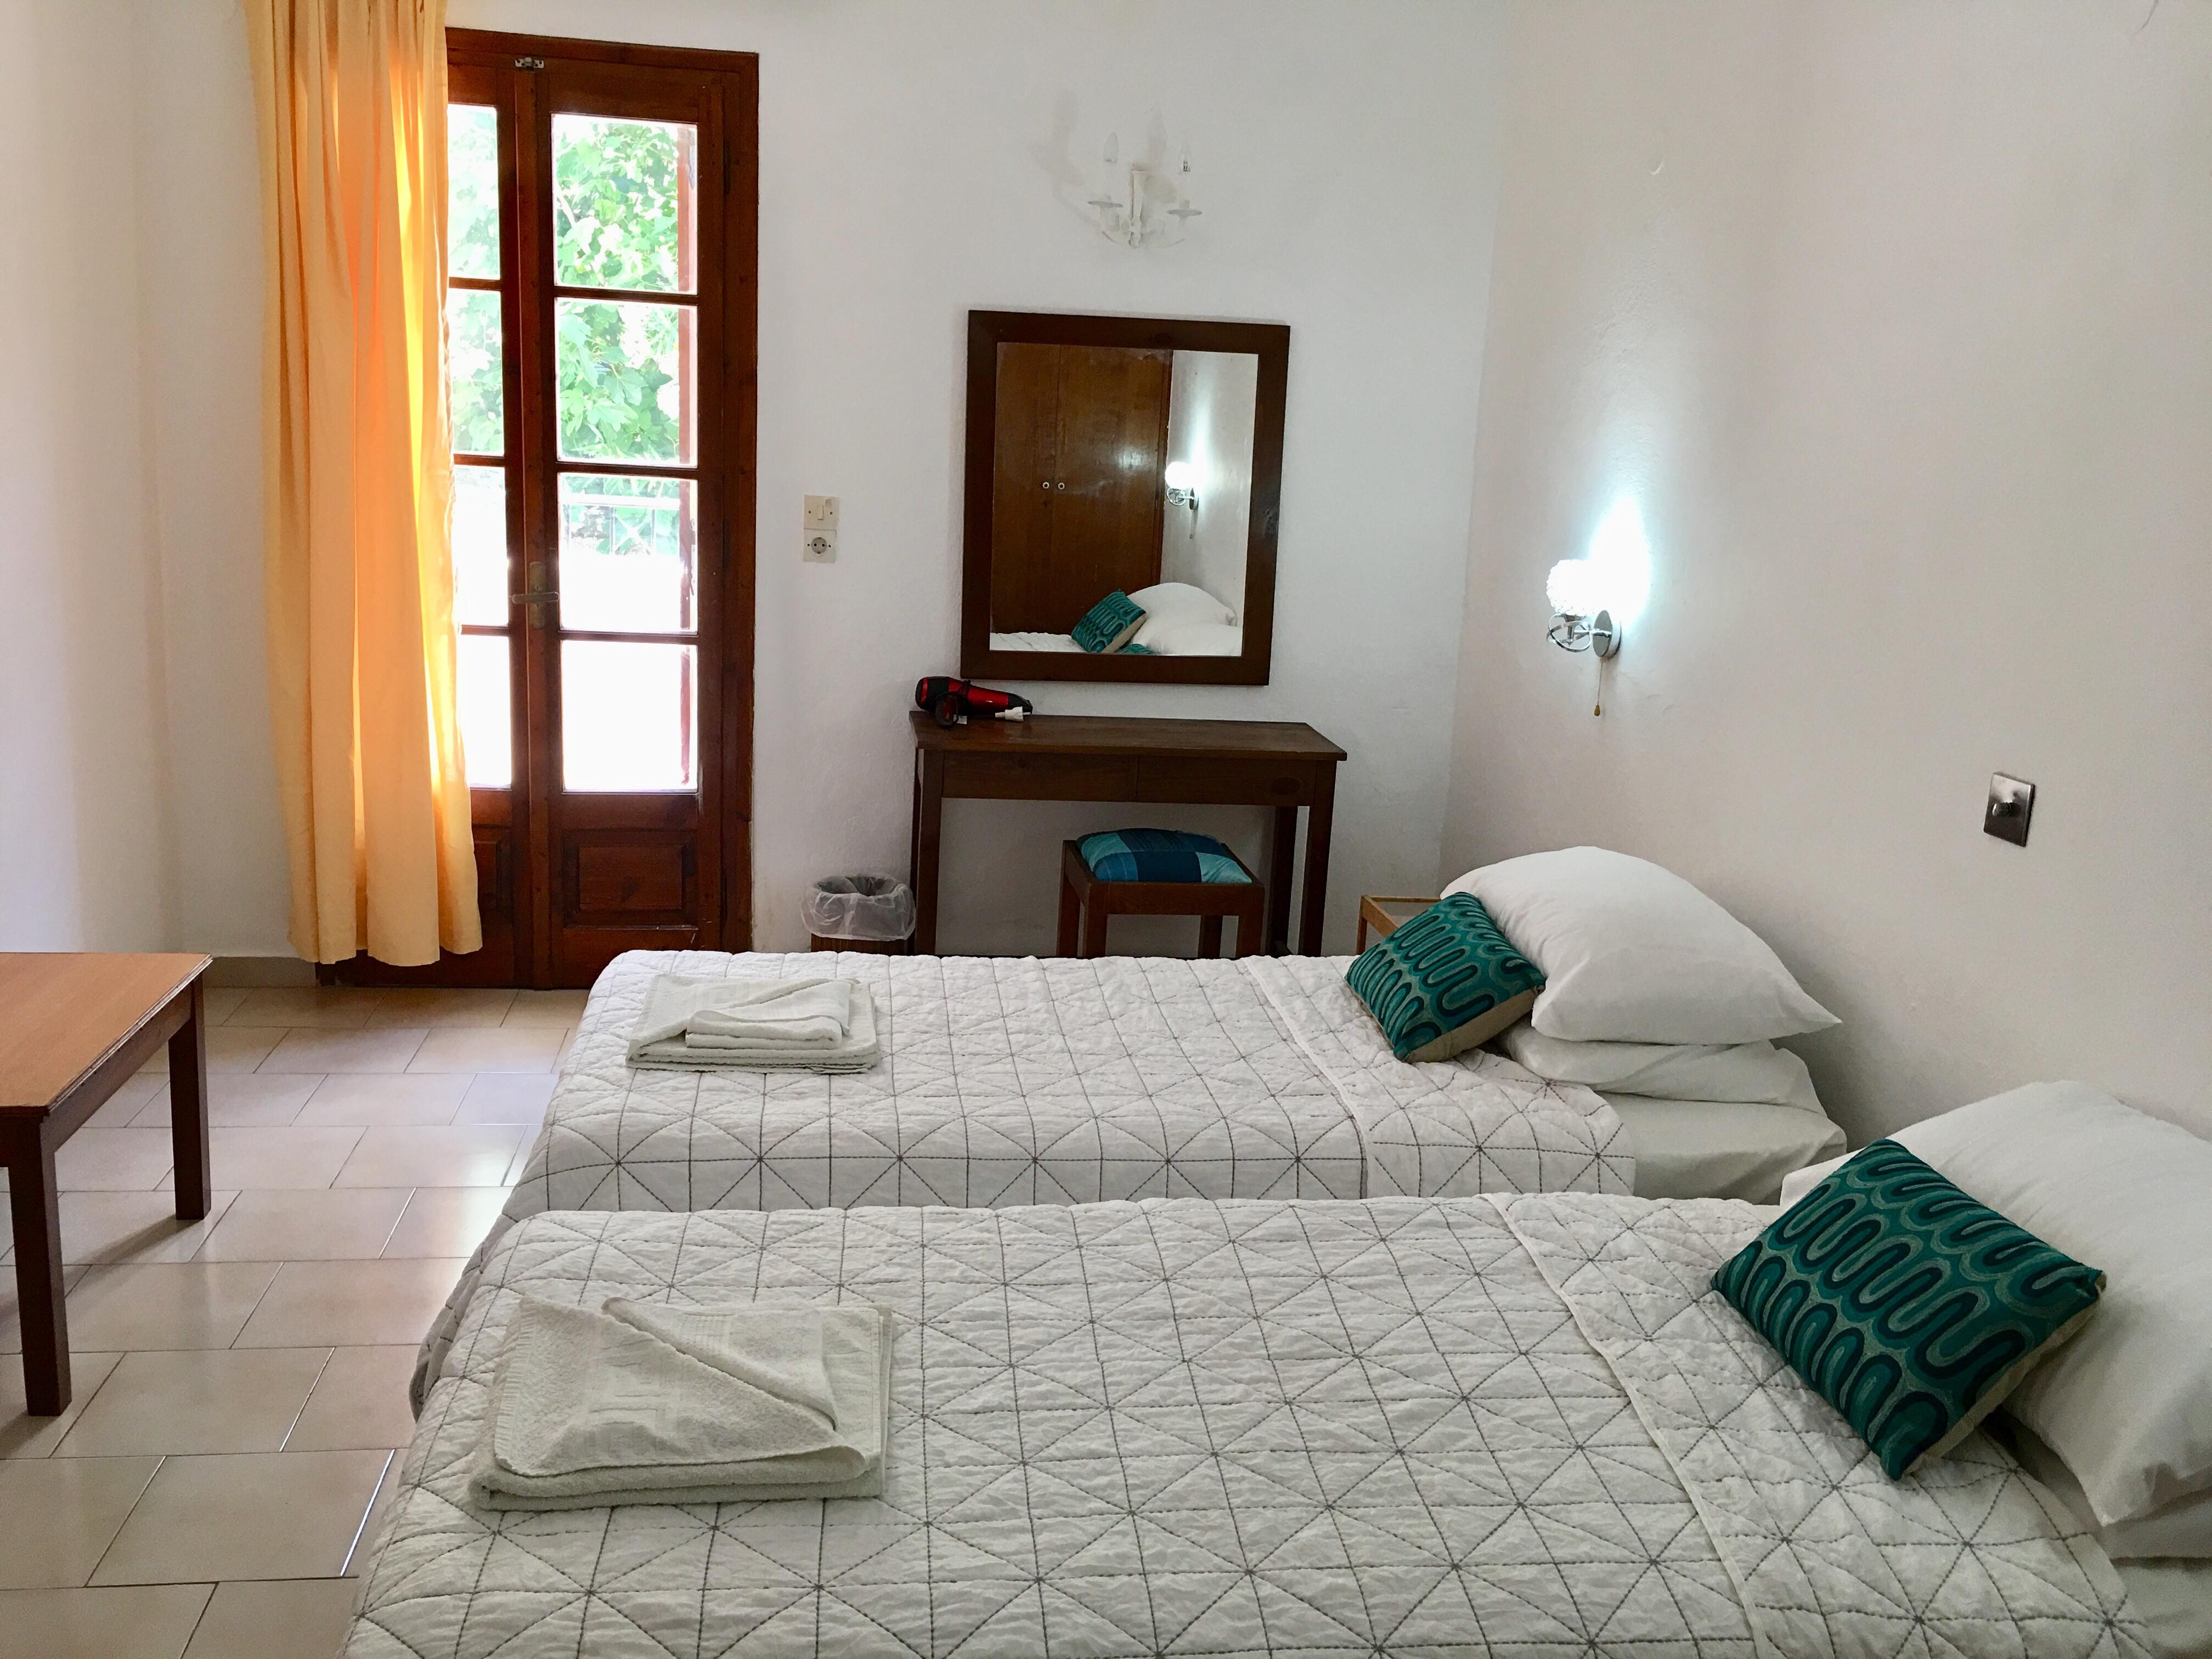 apartmentbed267